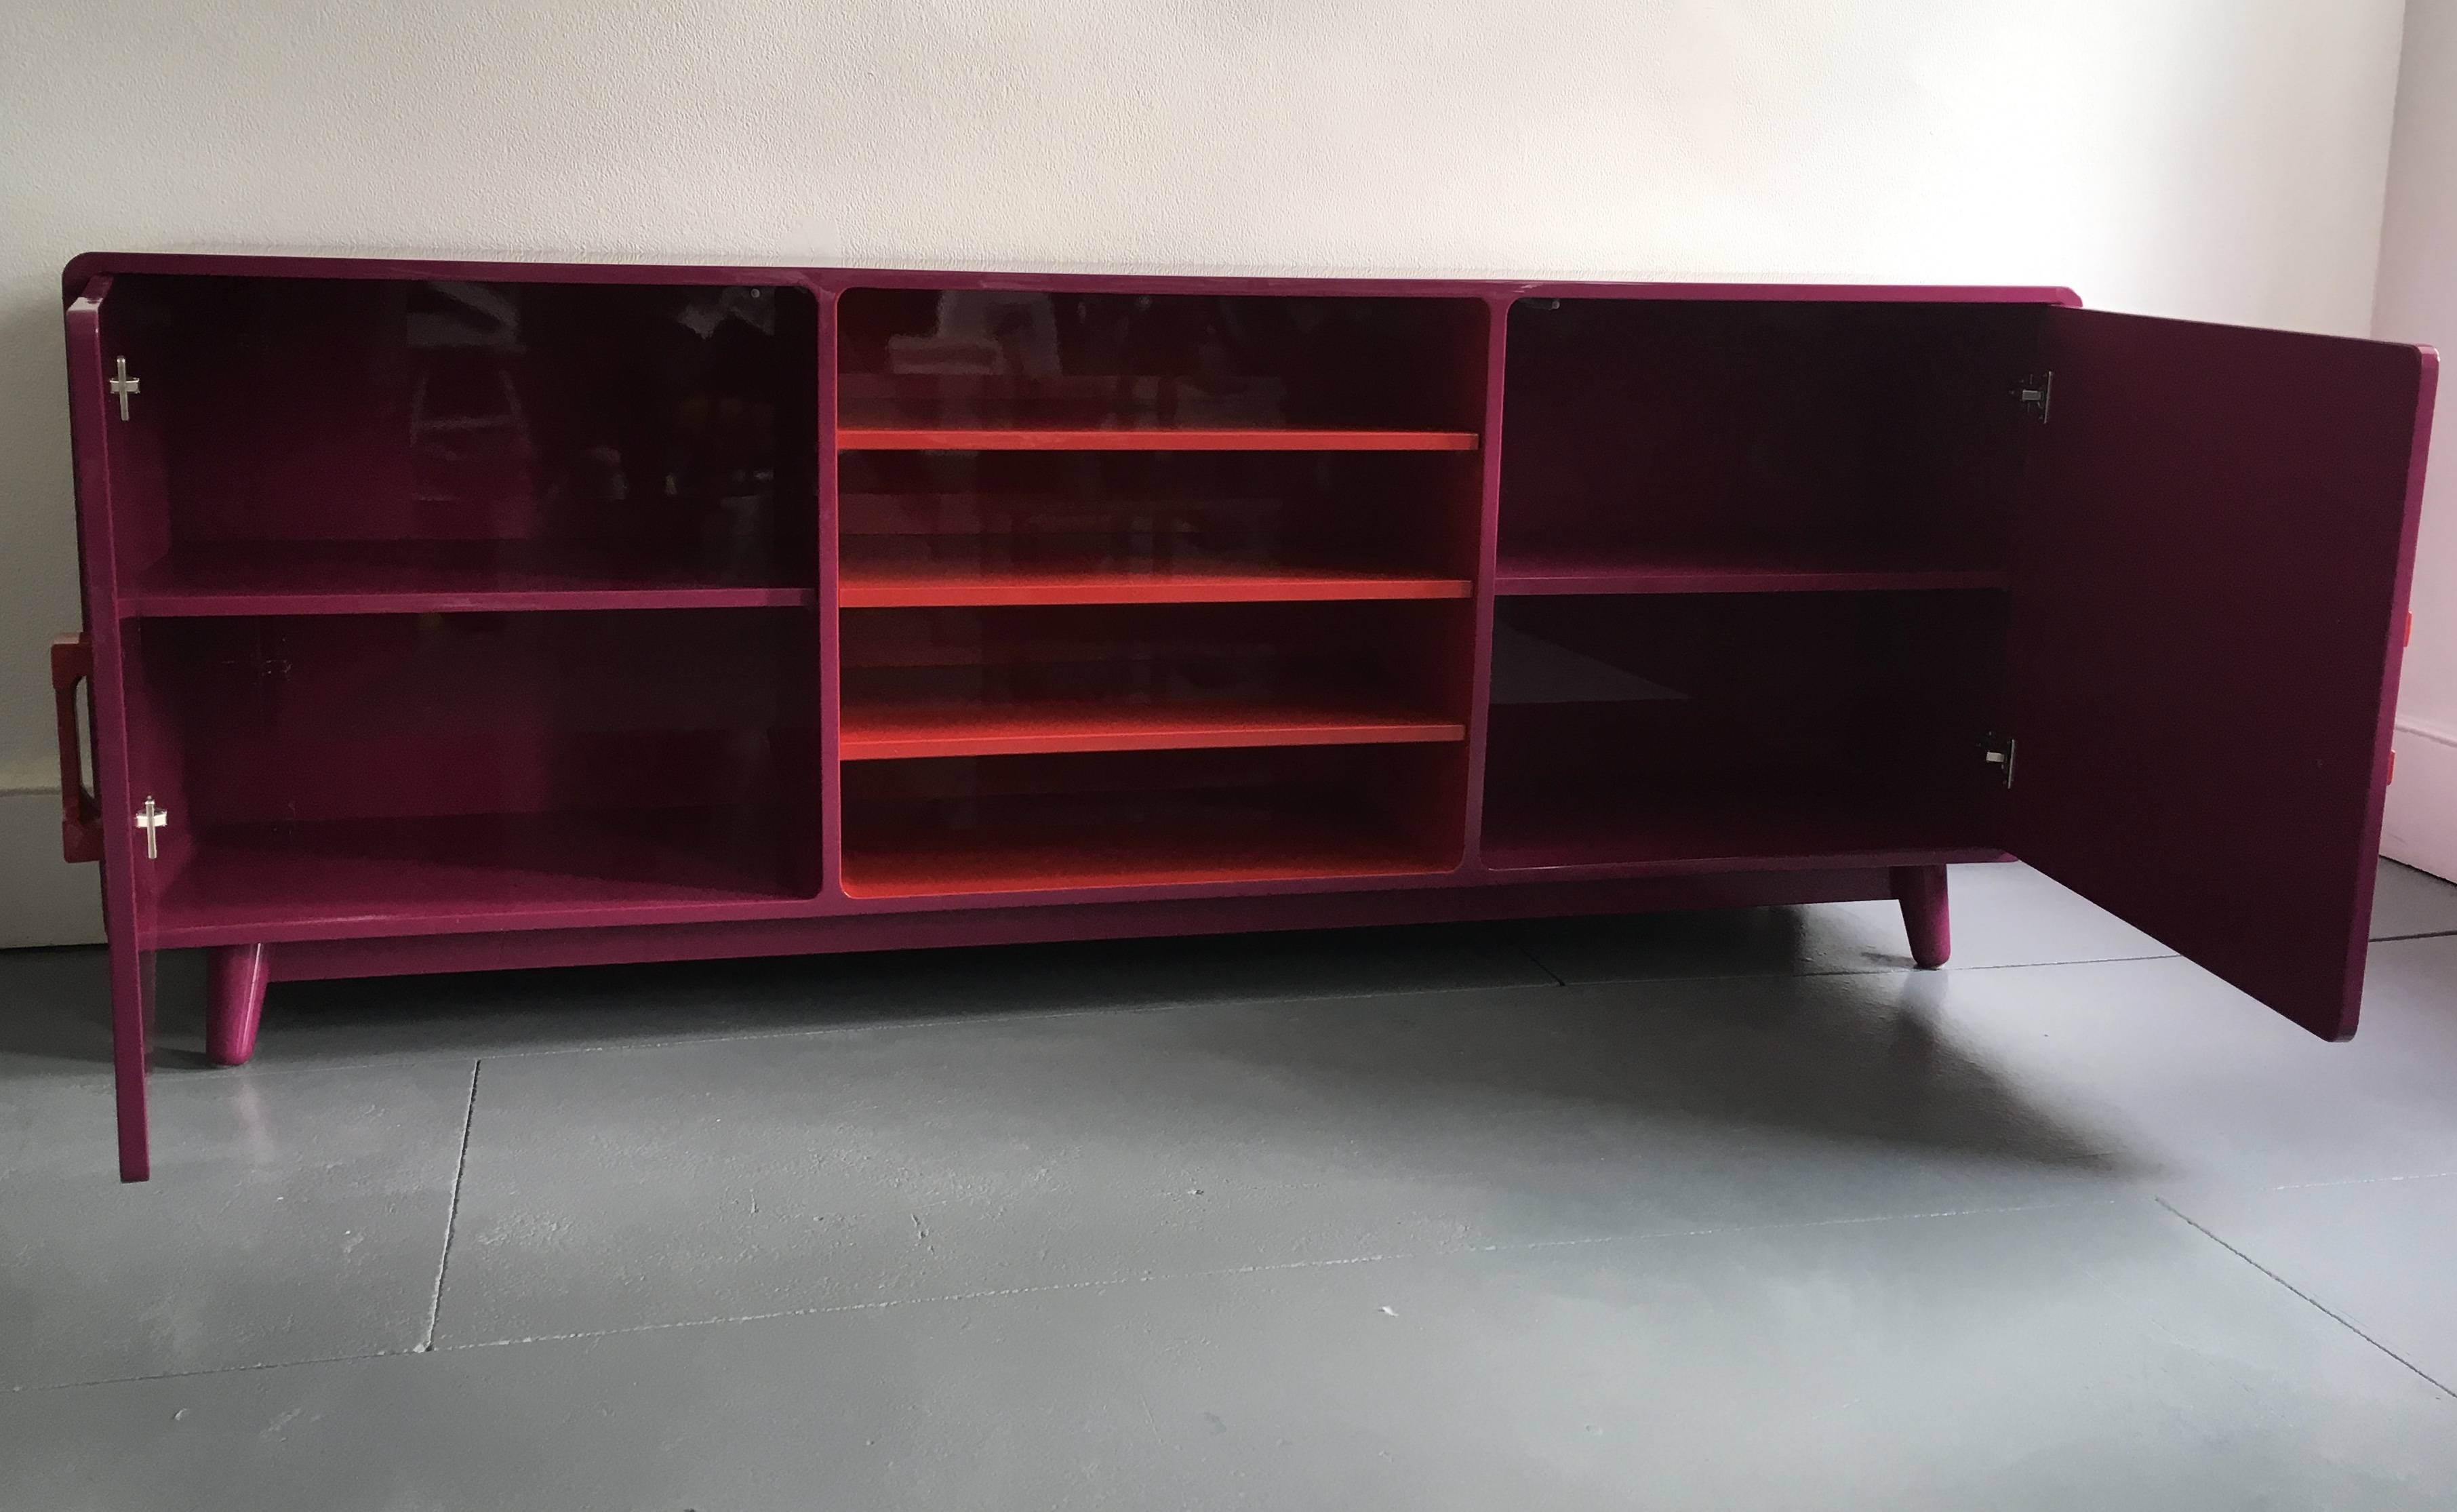 60's Inspired High Gloss Lacquered Sideboard In Hot Pink And Red Throughout Red High Gloss Sideboards (Photo 18 of 30)